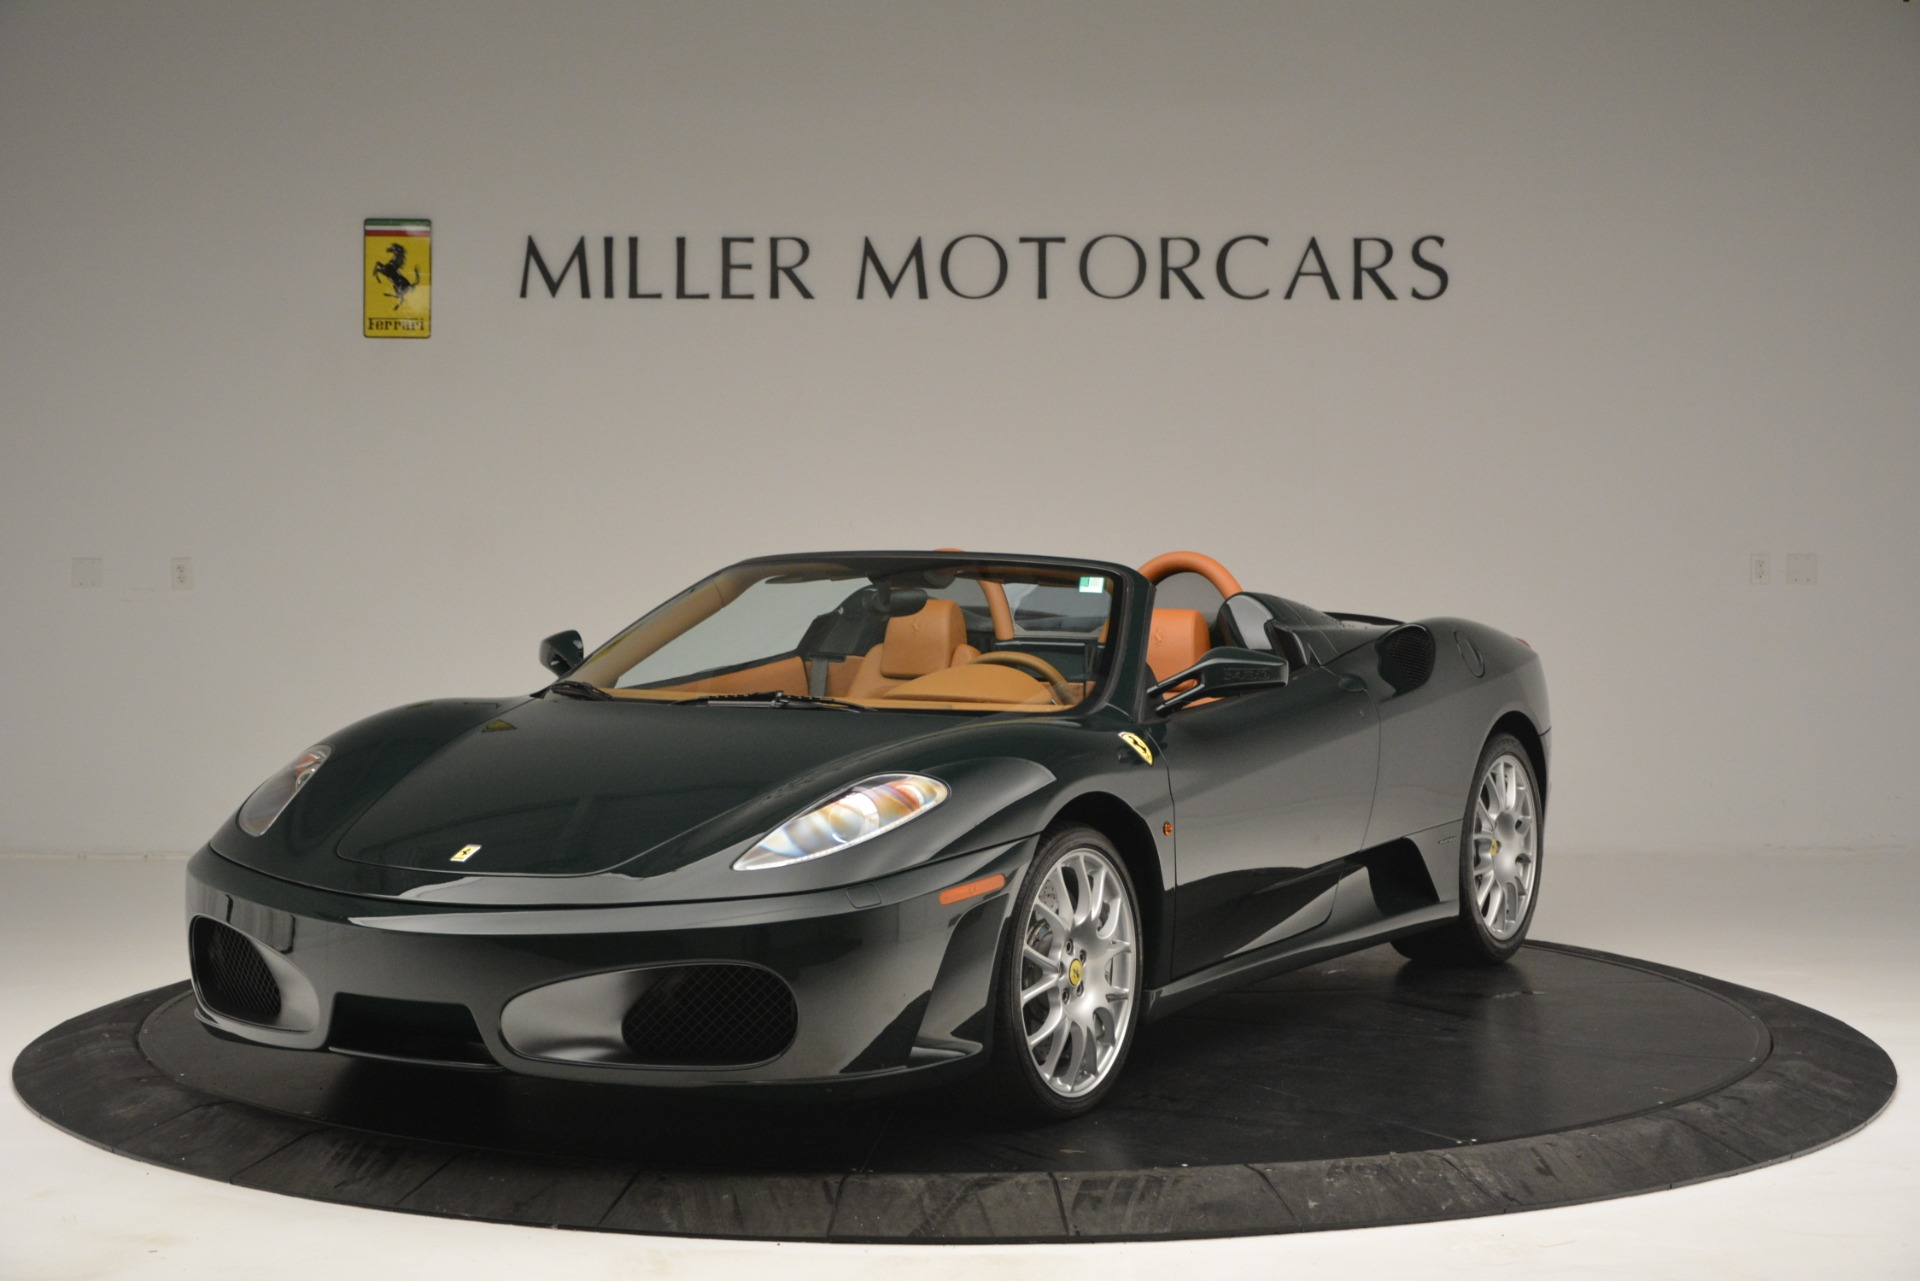 Used 2005 Ferrari F430 Spider for sale Sold at Aston Martin of Greenwich in Greenwich CT 06830 1